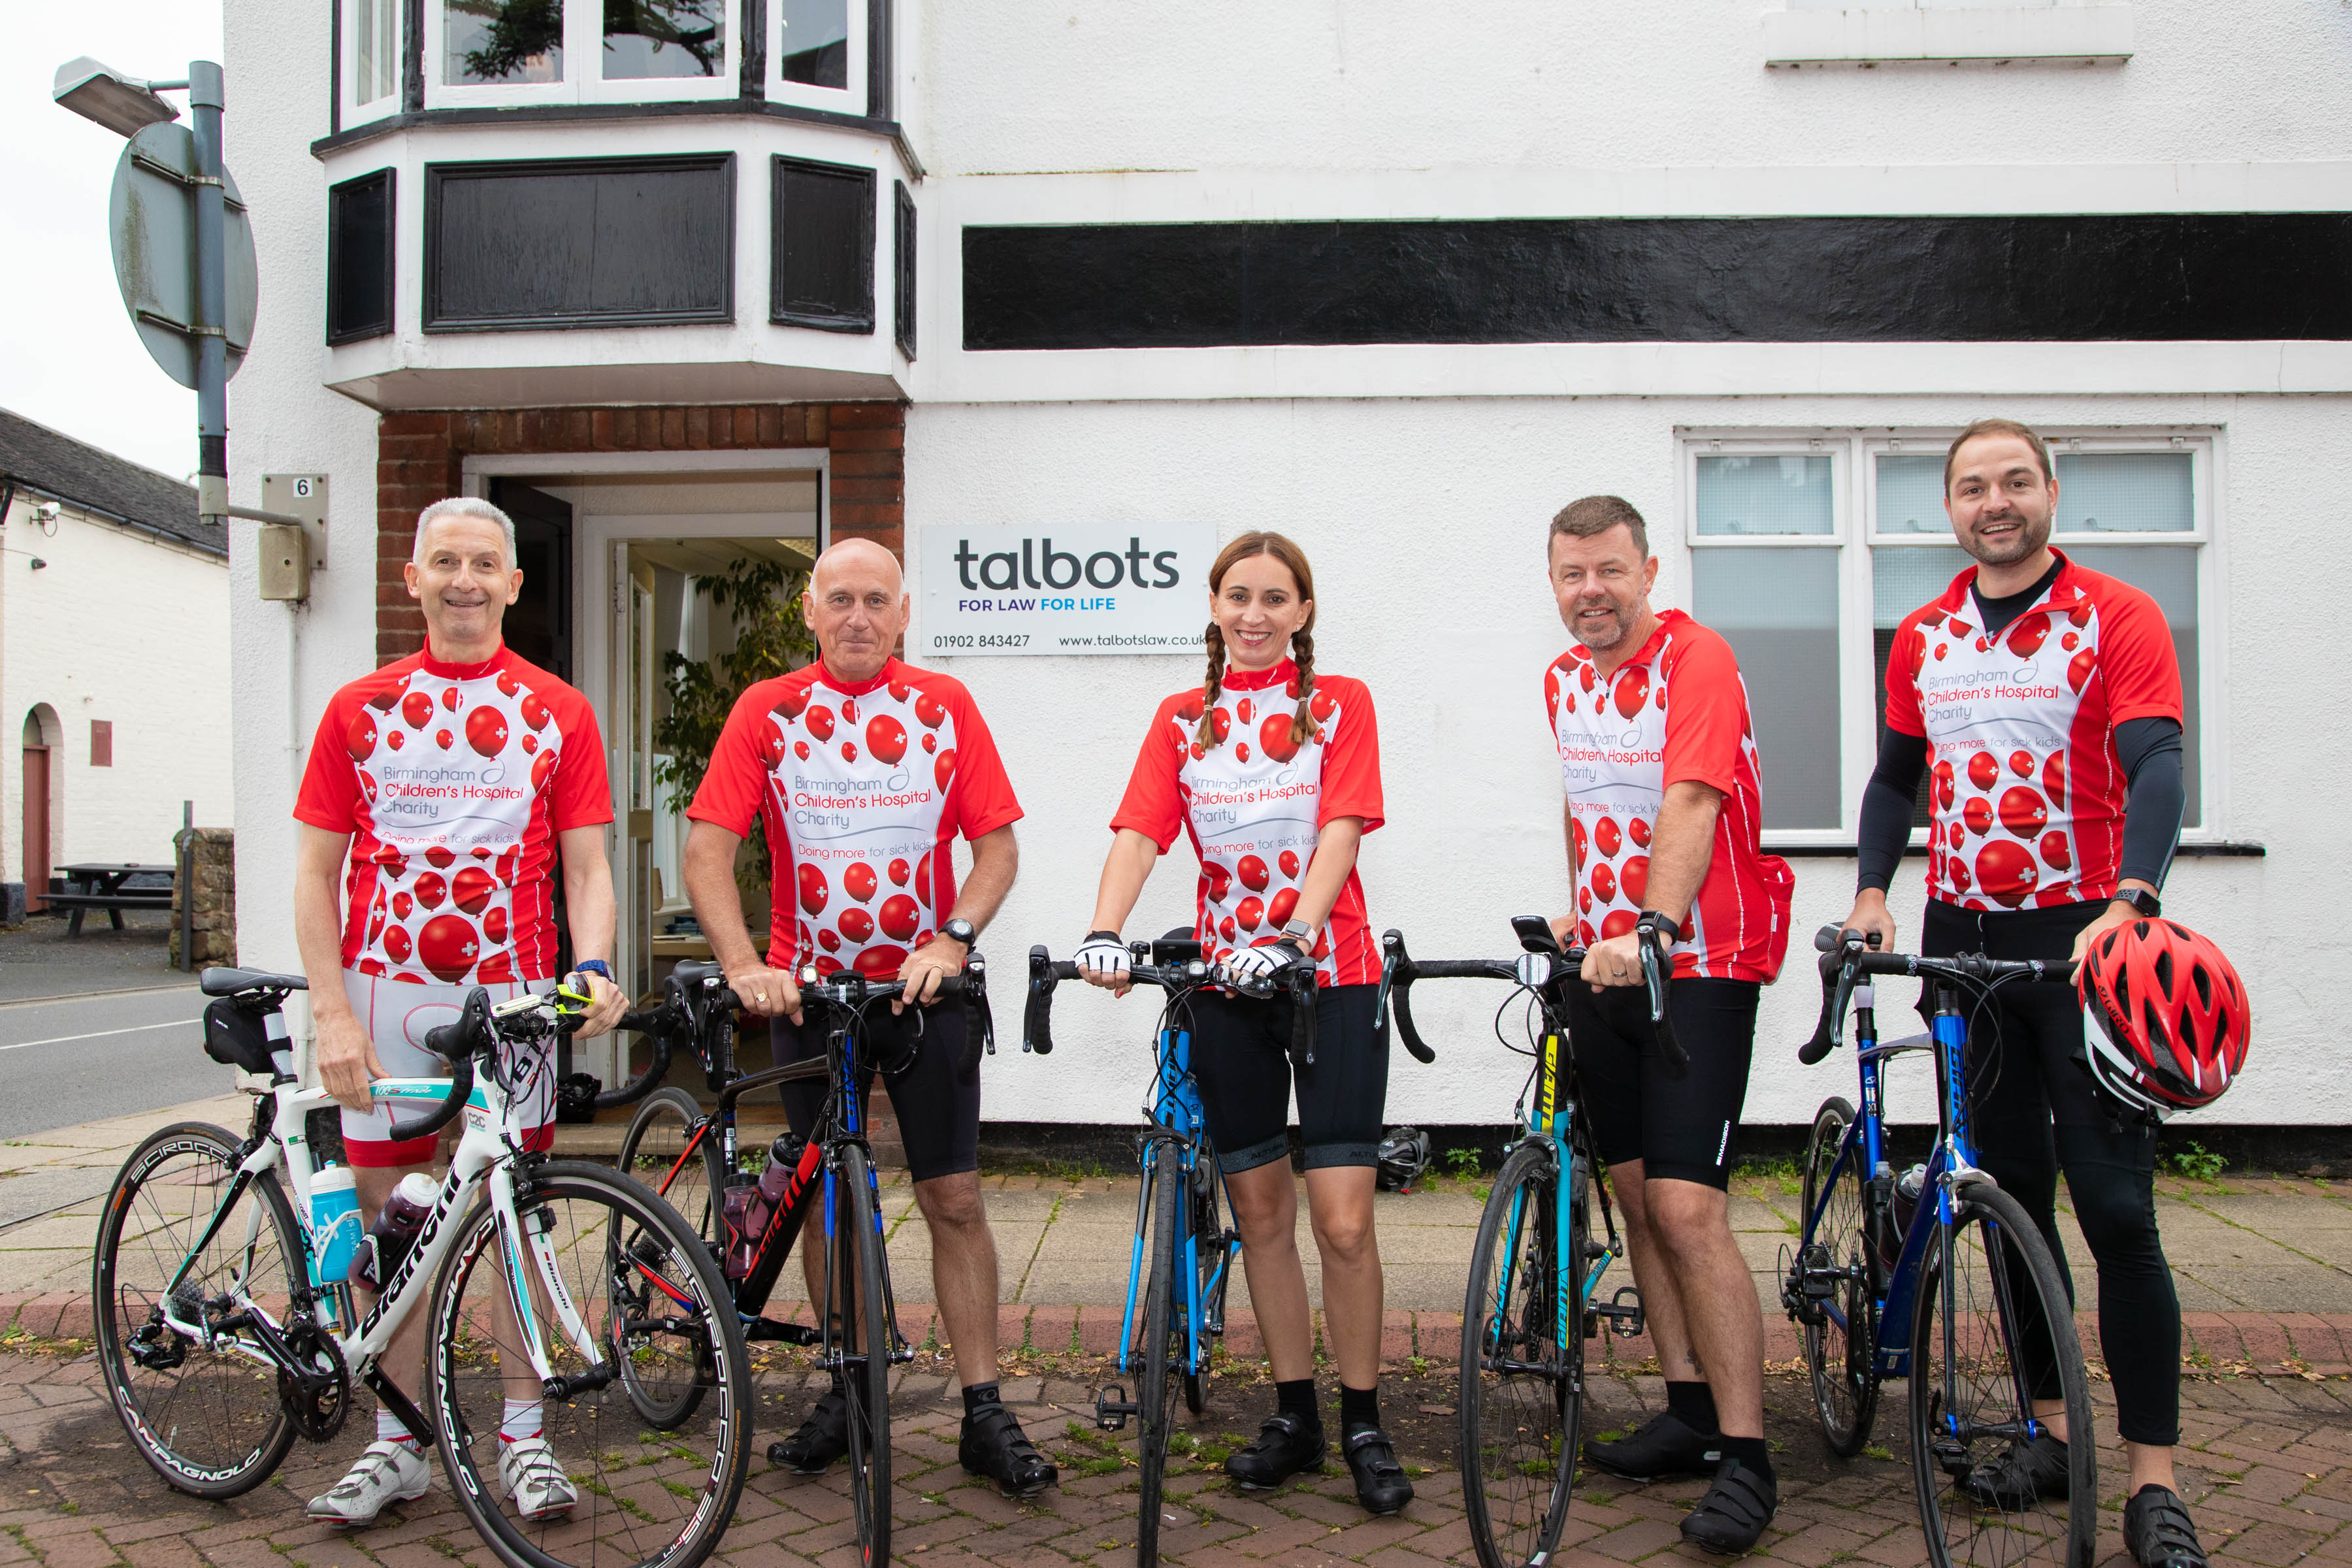 Magnificent 'Law' Seven adopt pedal power to raise £15,000 for Birmingham Children's Hospital